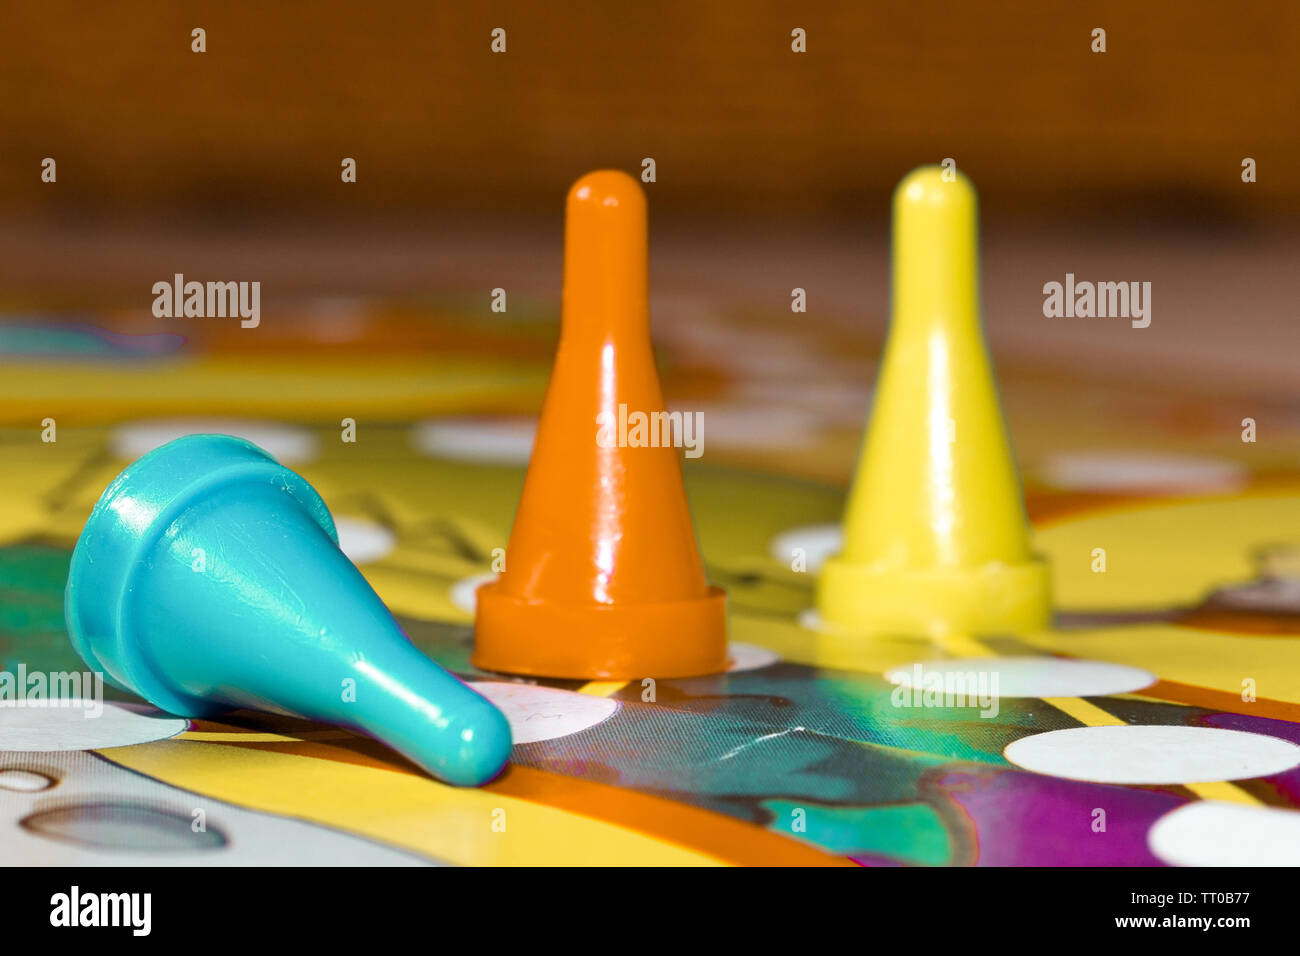 Board games for the home. plastic chips  on Board games for children - Stock Image